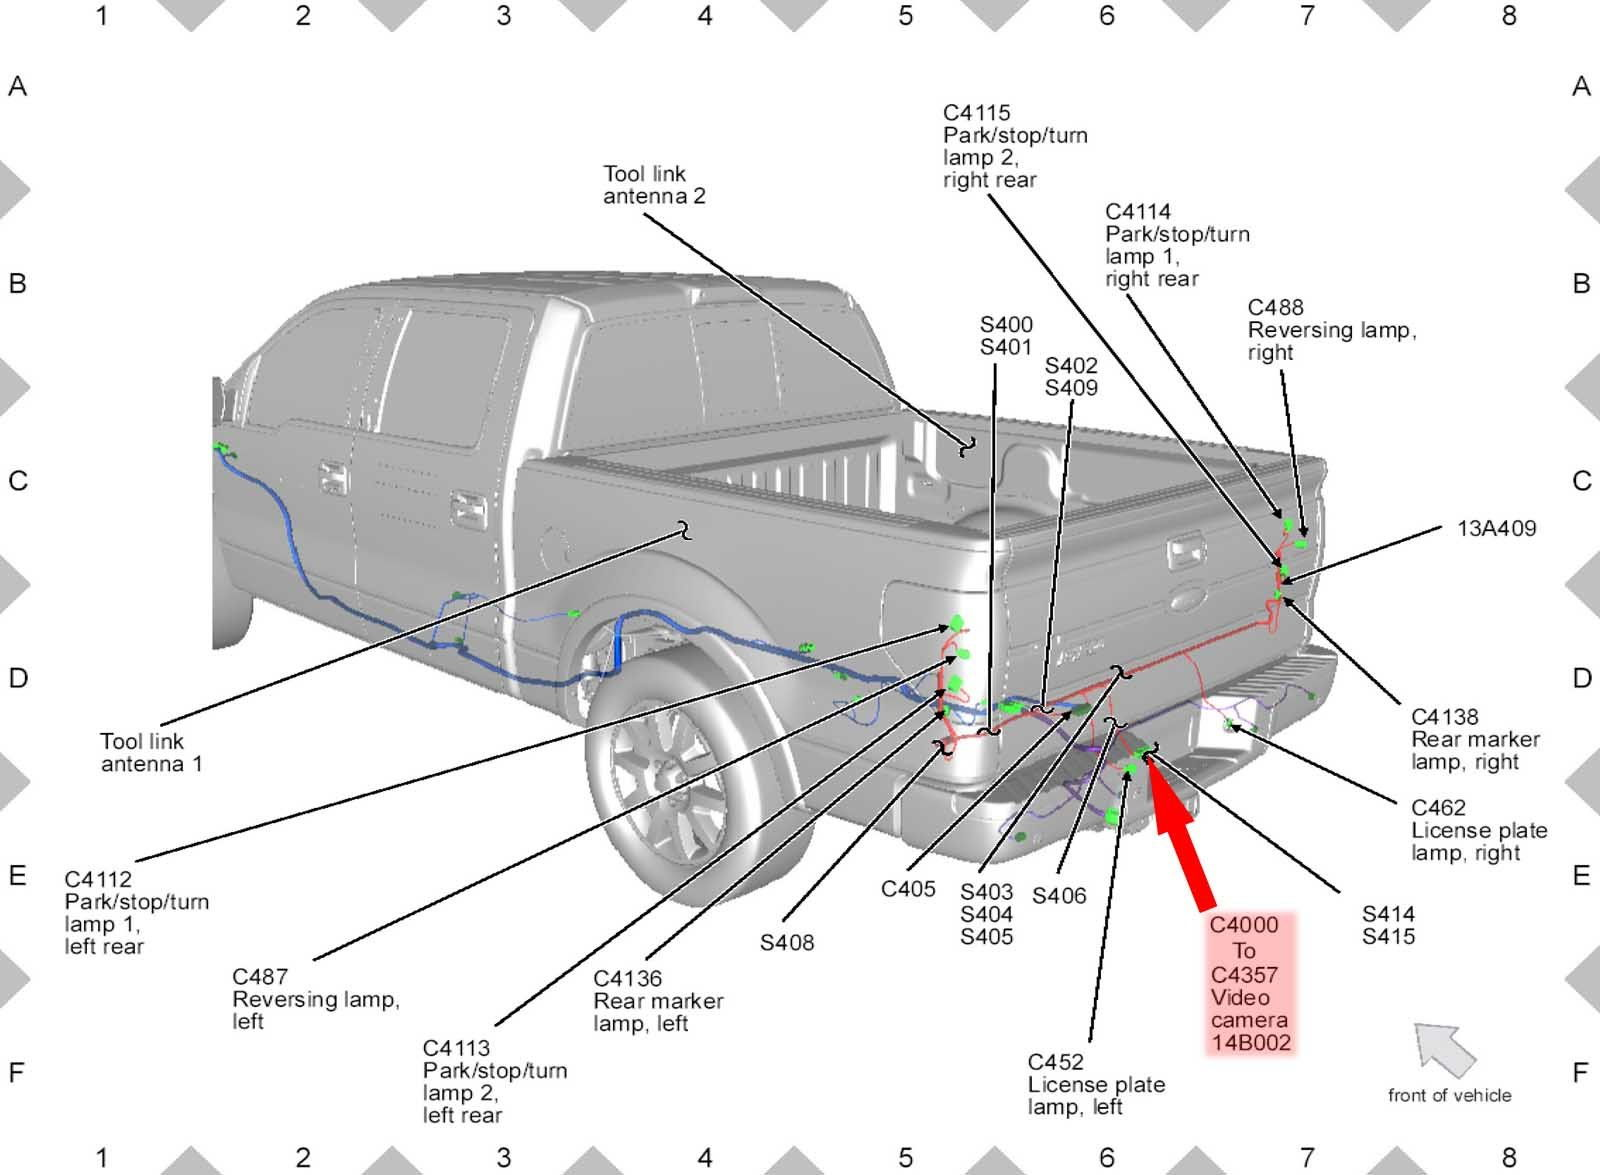 1994 ford f 150 xl wiring diagram for a truck ford f 150 truck wiring diagram can bliss be added? - page 2 - ford f150 forum - community ...